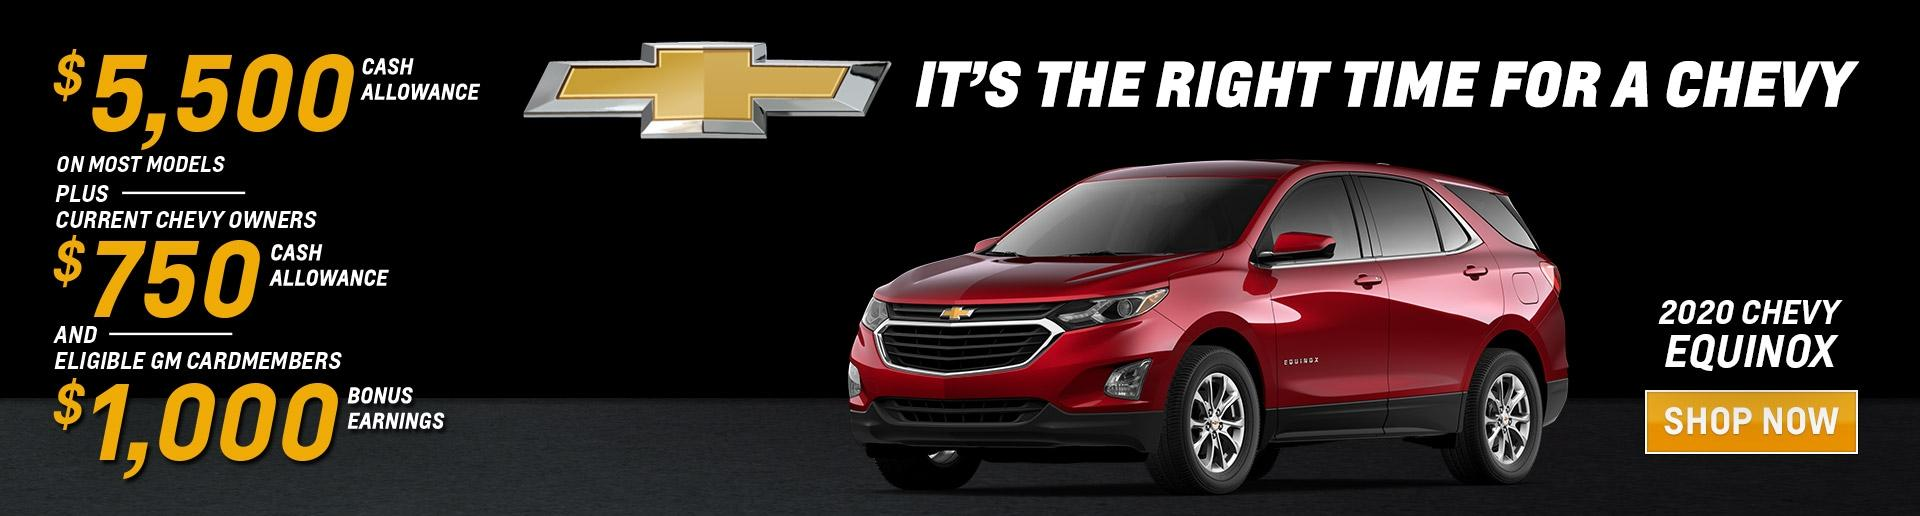 Its' the right time for a 2020 Chevy Equinox | Chevy Drives Chicago | Chicagoland & NW Indiana Chevy Dealers